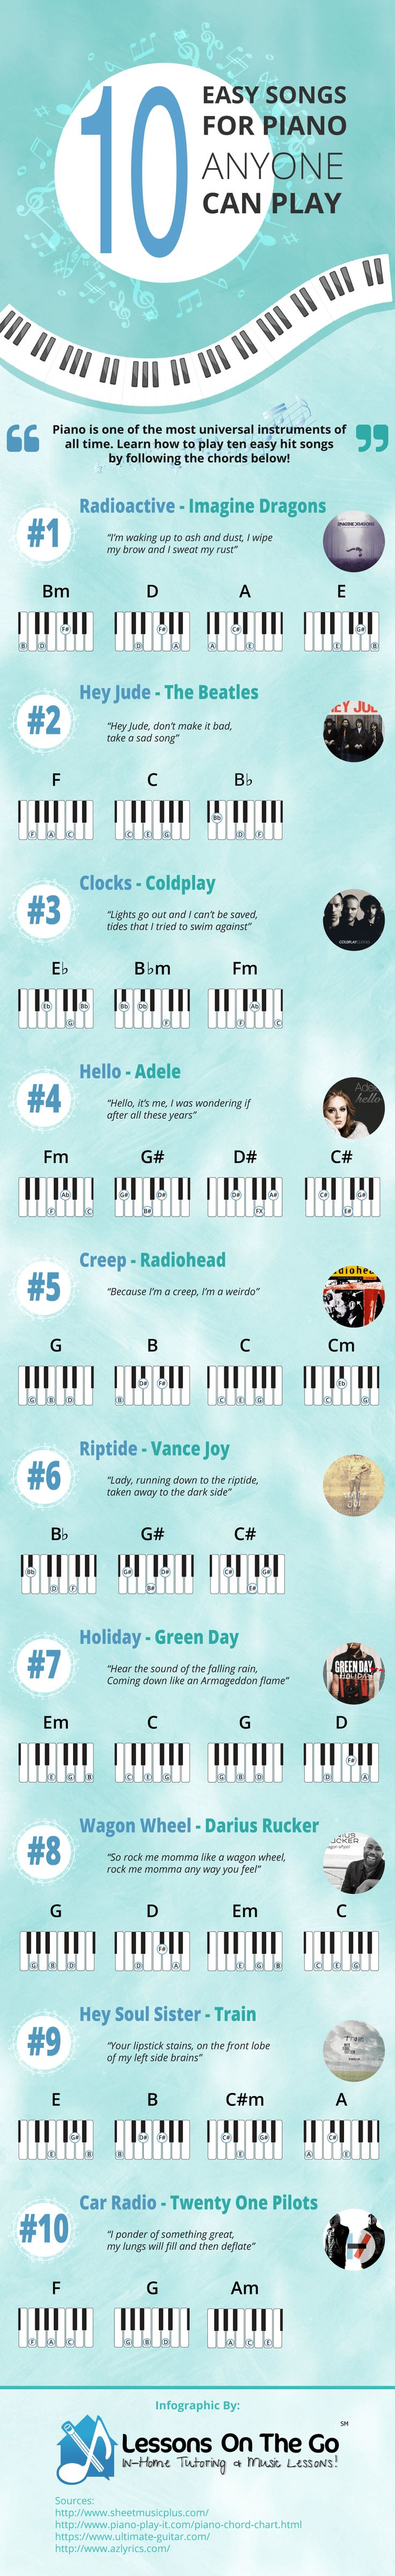 Best 25 keyboard lessons ideas on pinterest beginner piano learning your favorite songs on piano doesnt have to be a difficult process most popular songs only have three or four chords played in the same order hexwebz Gallery